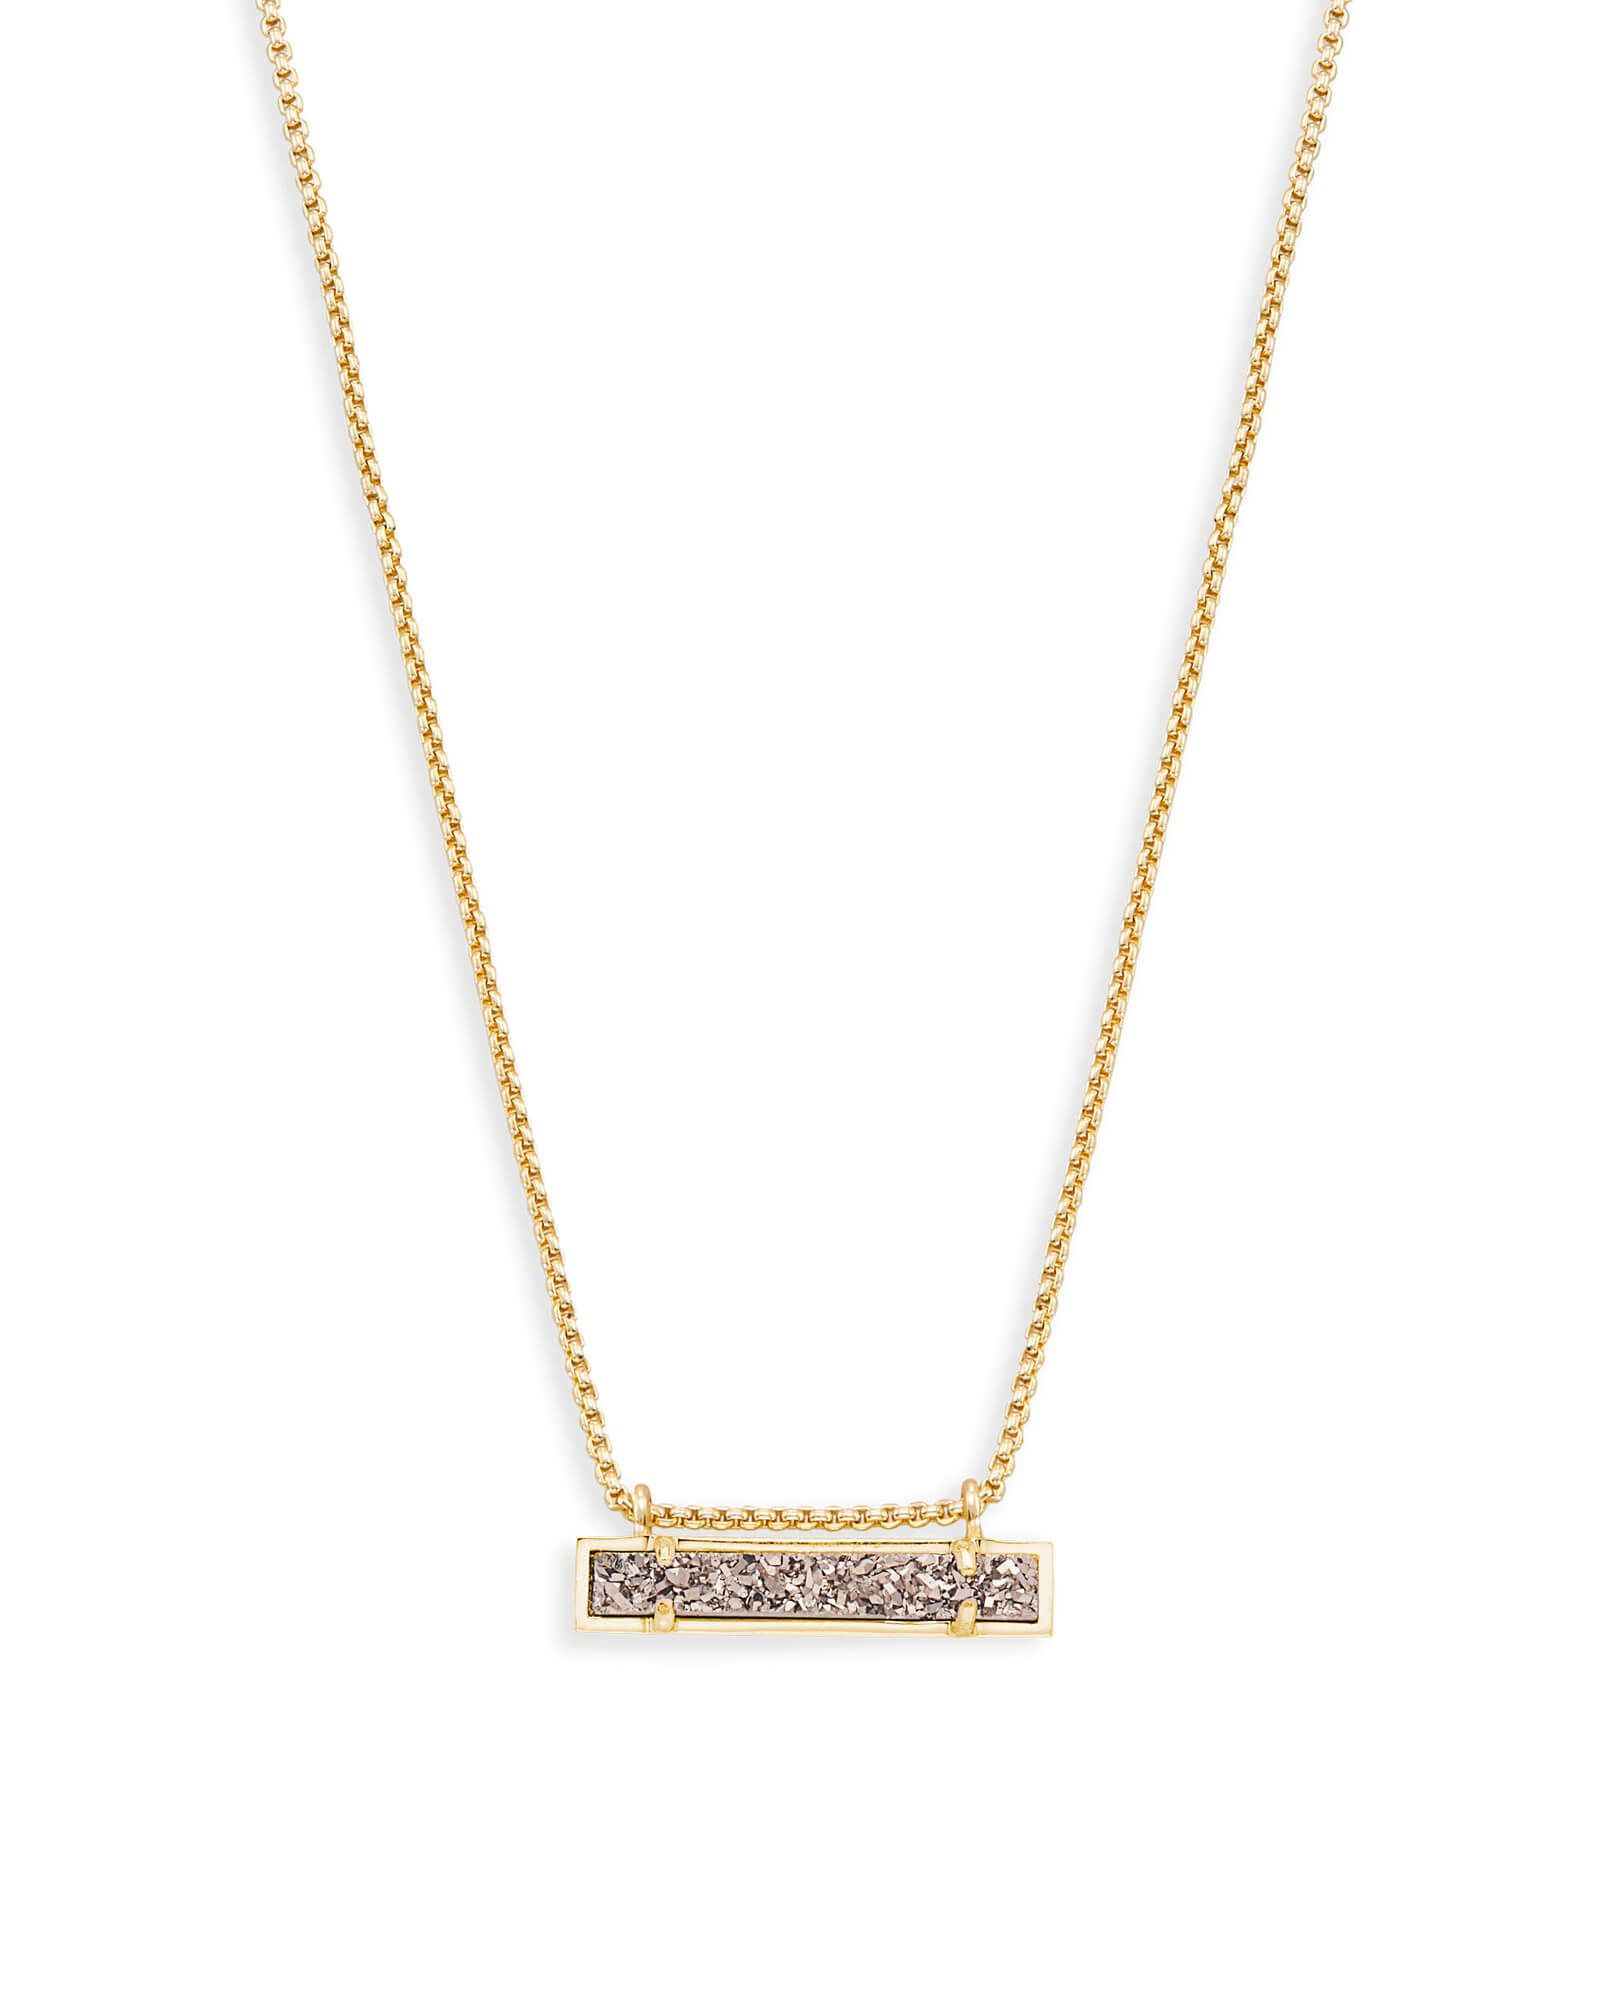 Shop gold bar pendant necklace at Kendra Scott. With a